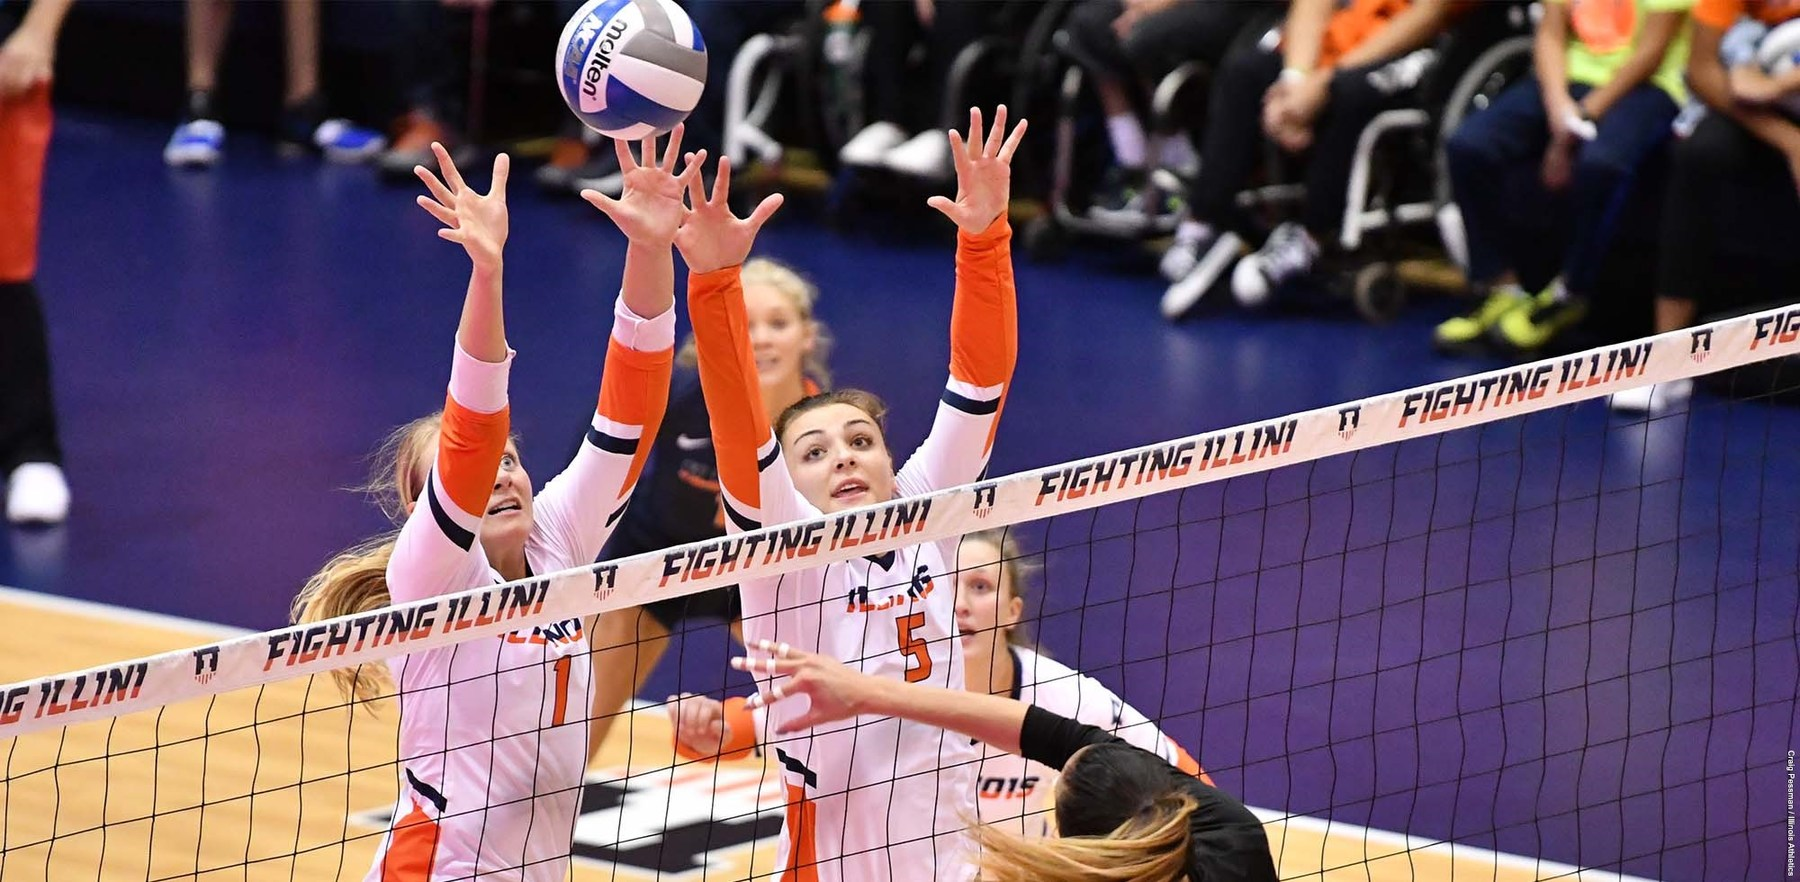 Volleyball players go up for a block